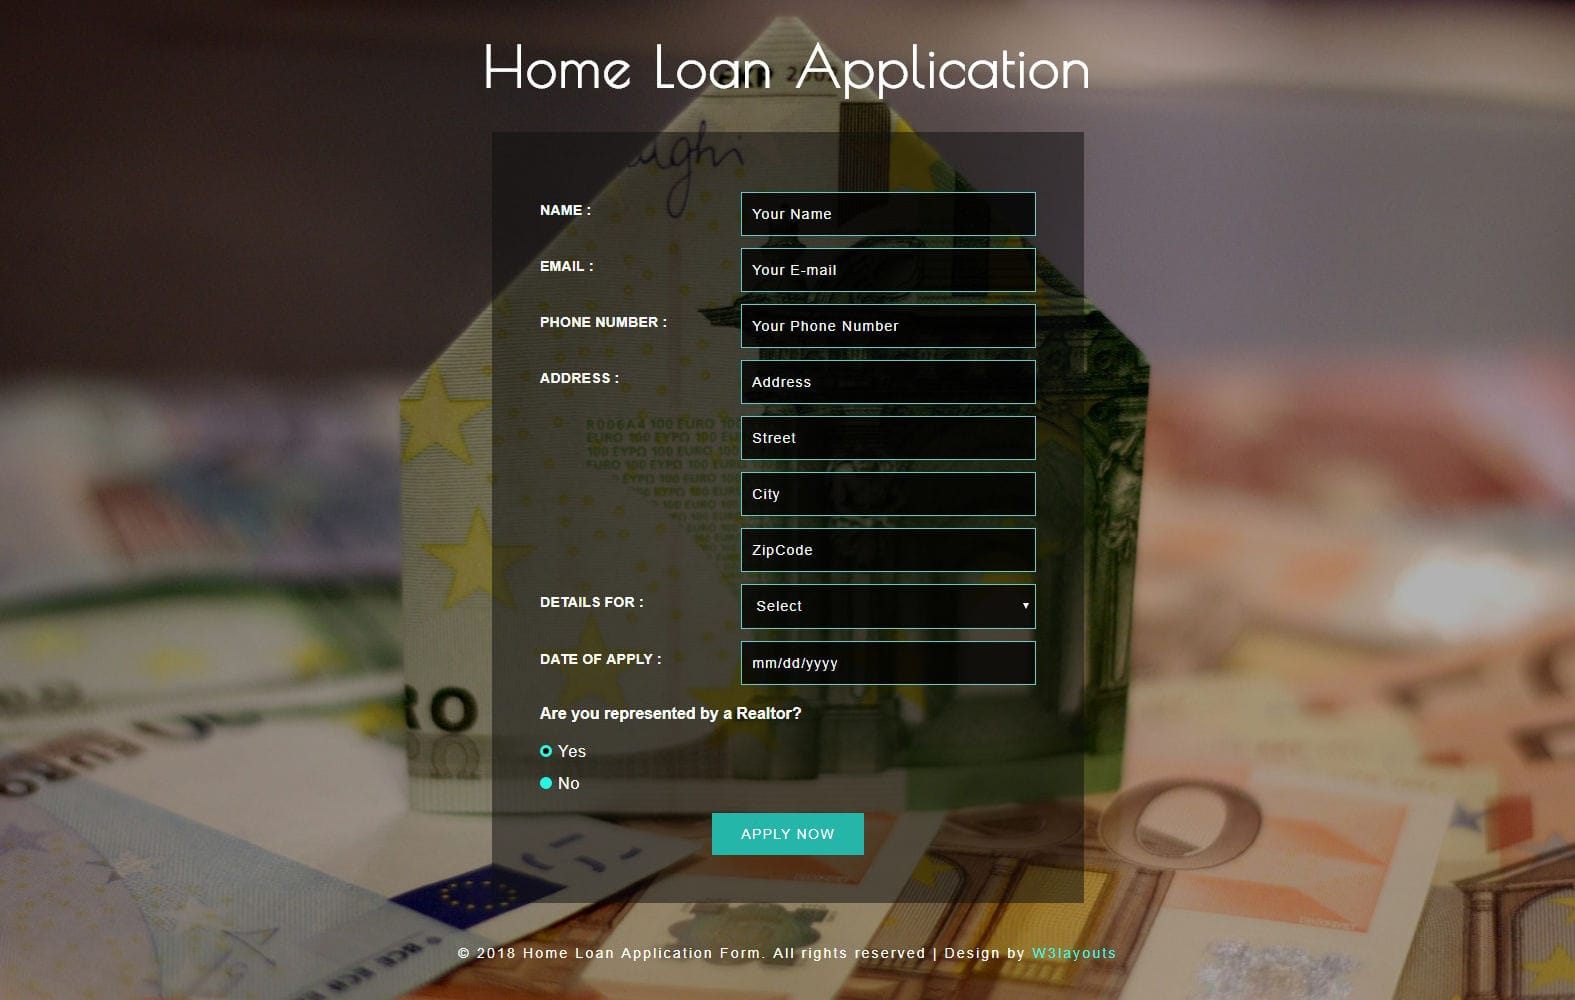 Home Loan Application Form a Flat Responsive Widget Template Mobile website template Free